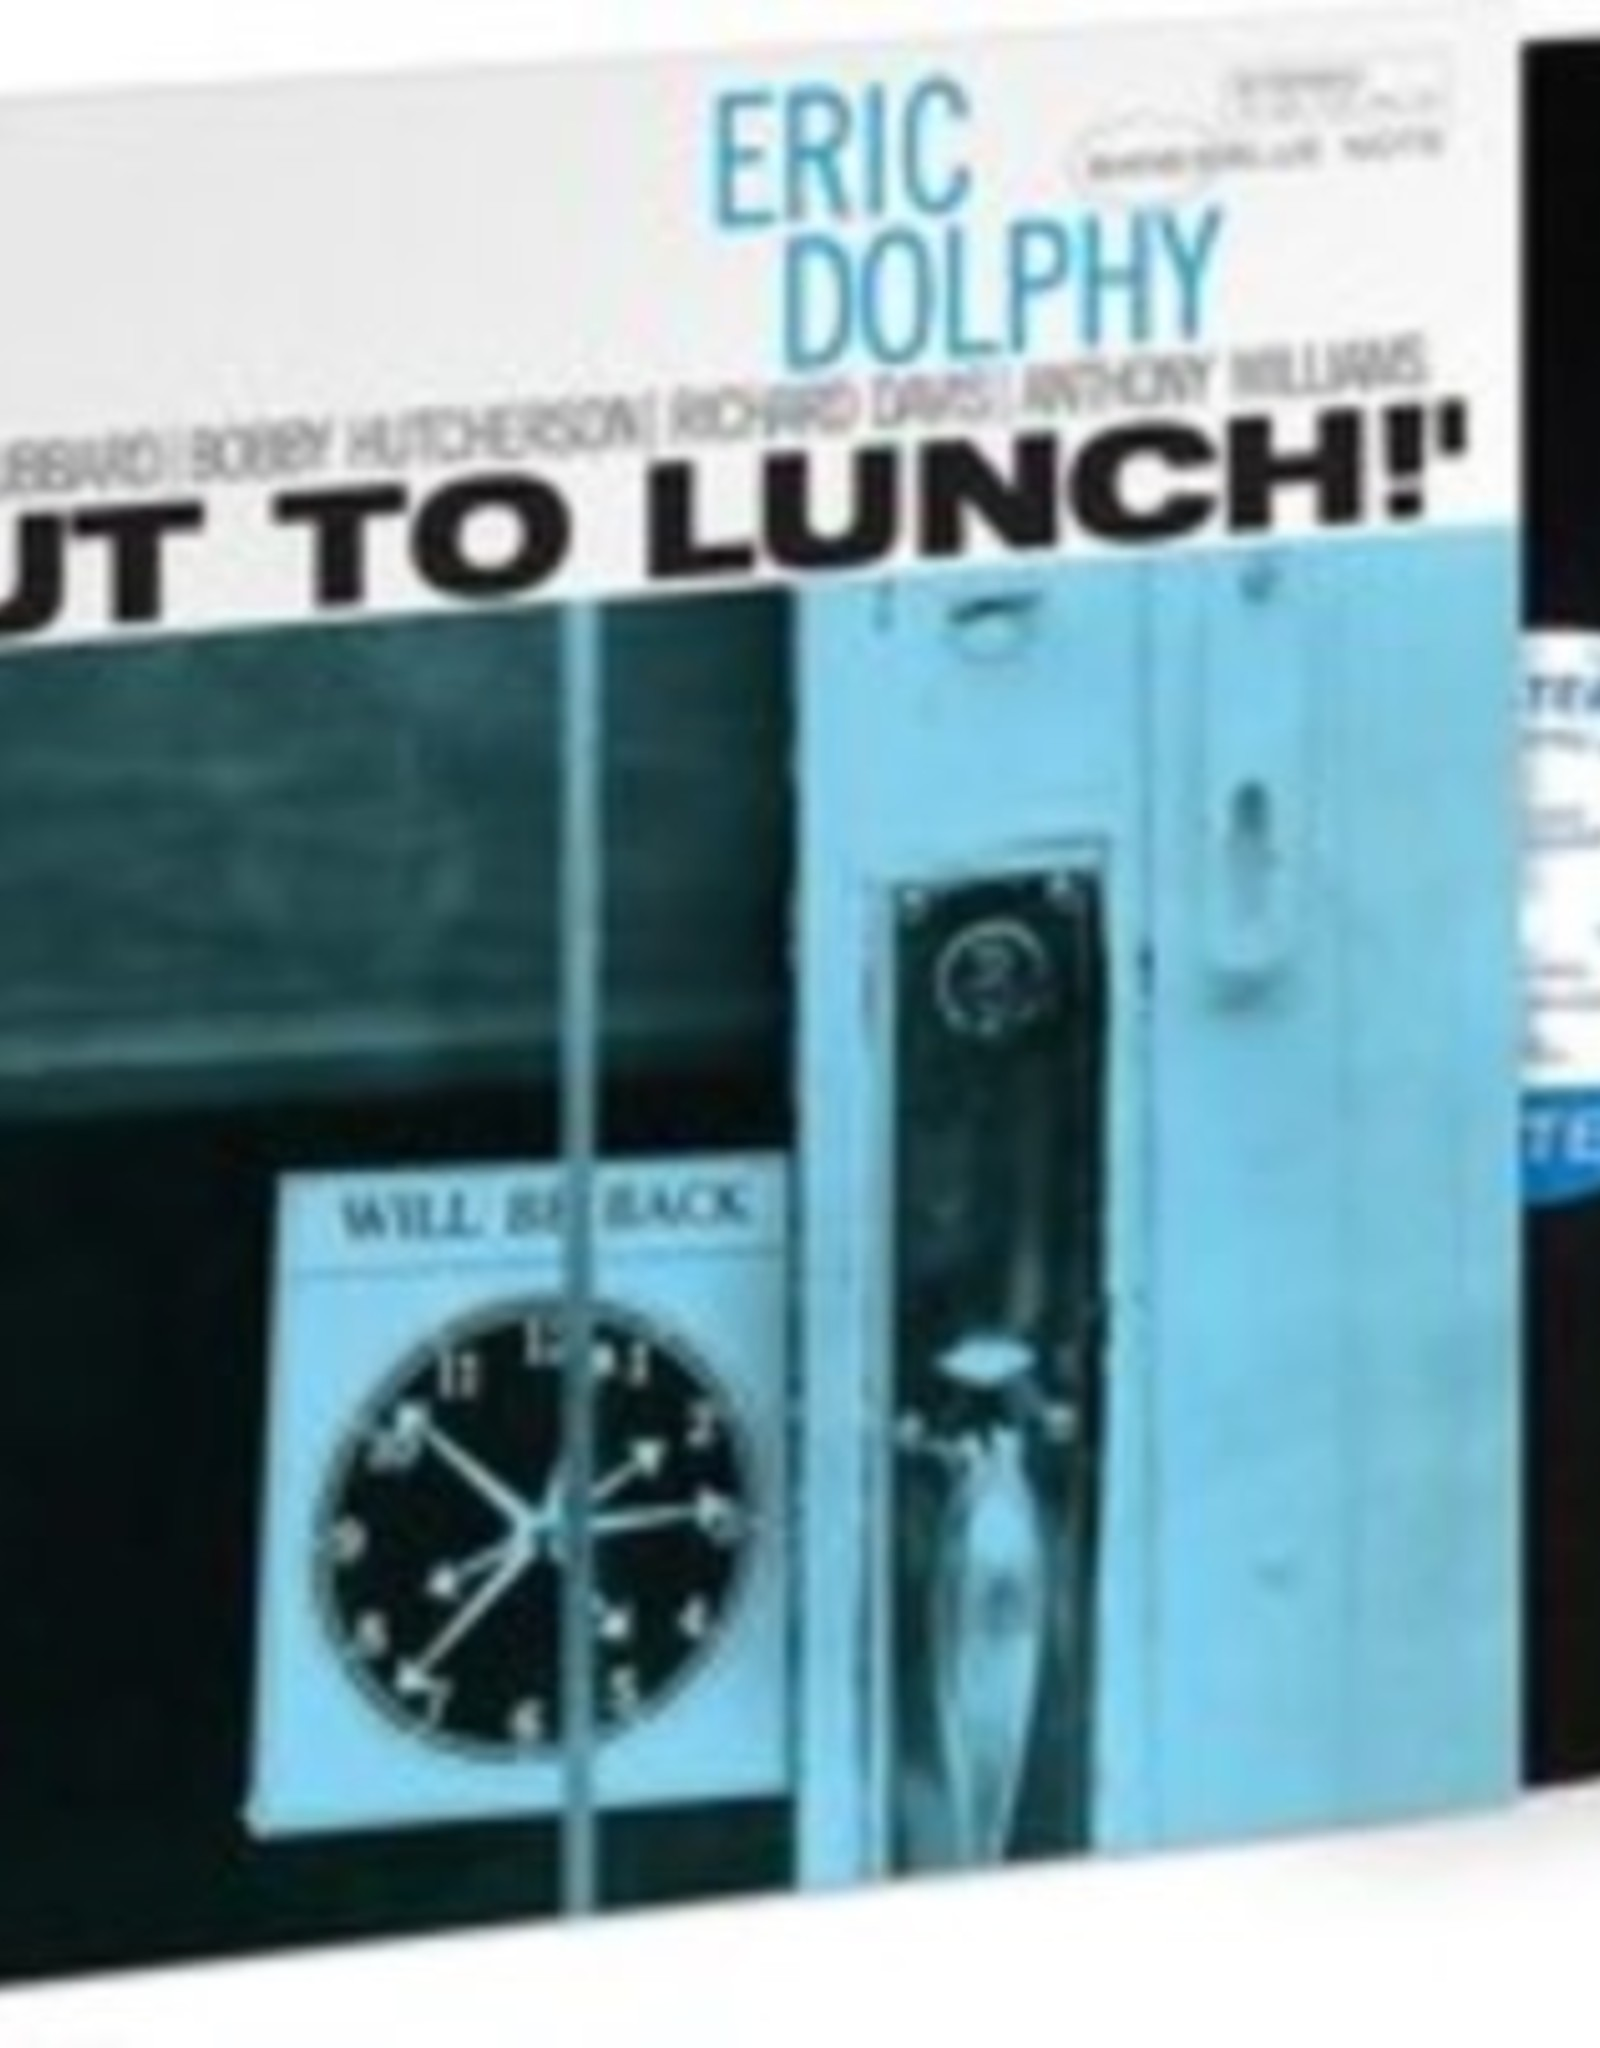 Eric Dolphy - Out to Lunch (Analog Master)